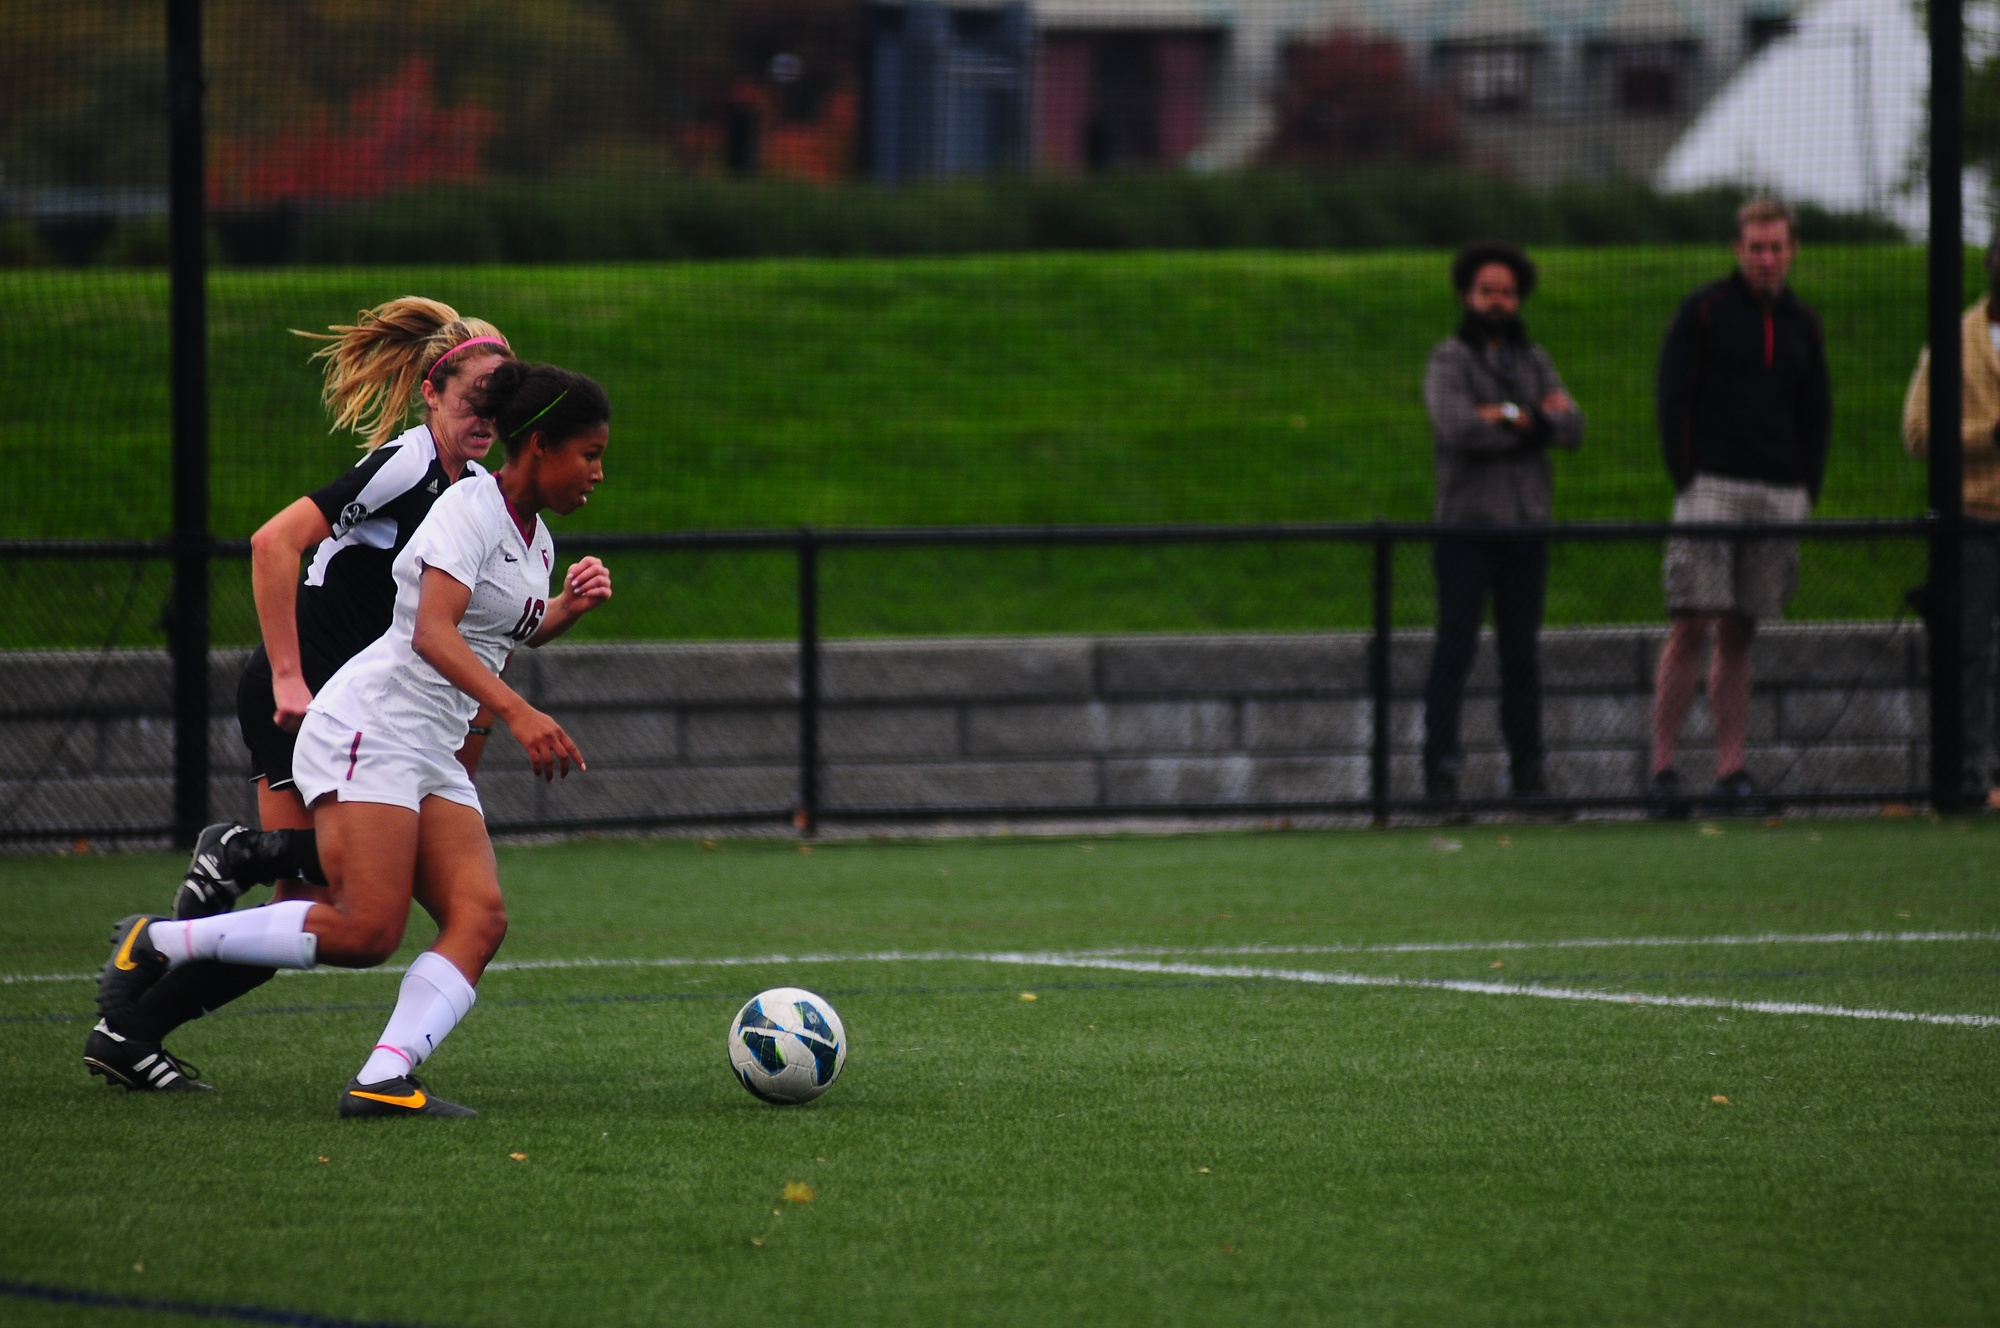 Sophomore forward Midge Purce, shown here in earlier action, tallied the squad's first goal en route to a 3-0 win over Penn.